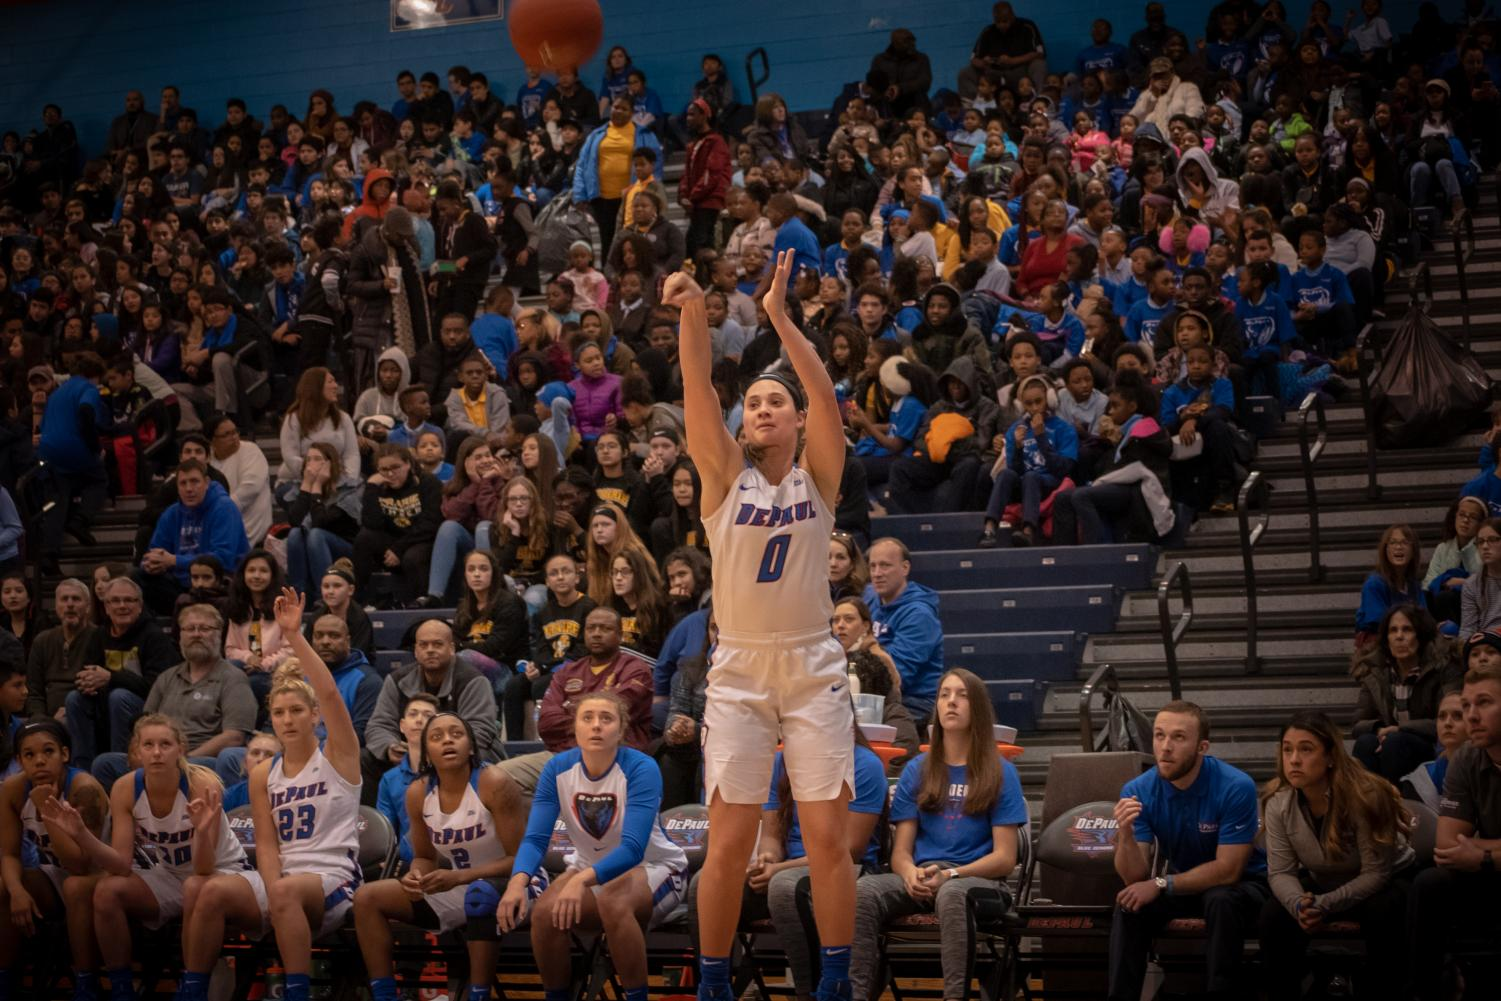 Senior guard Rebekah Dahlman rises for a 3-point attempt during DePaul's 102-88 victory over Temple Monday afternoon at McGrath-Phillips Arena. Jonathan Aguilar | The DePaulia